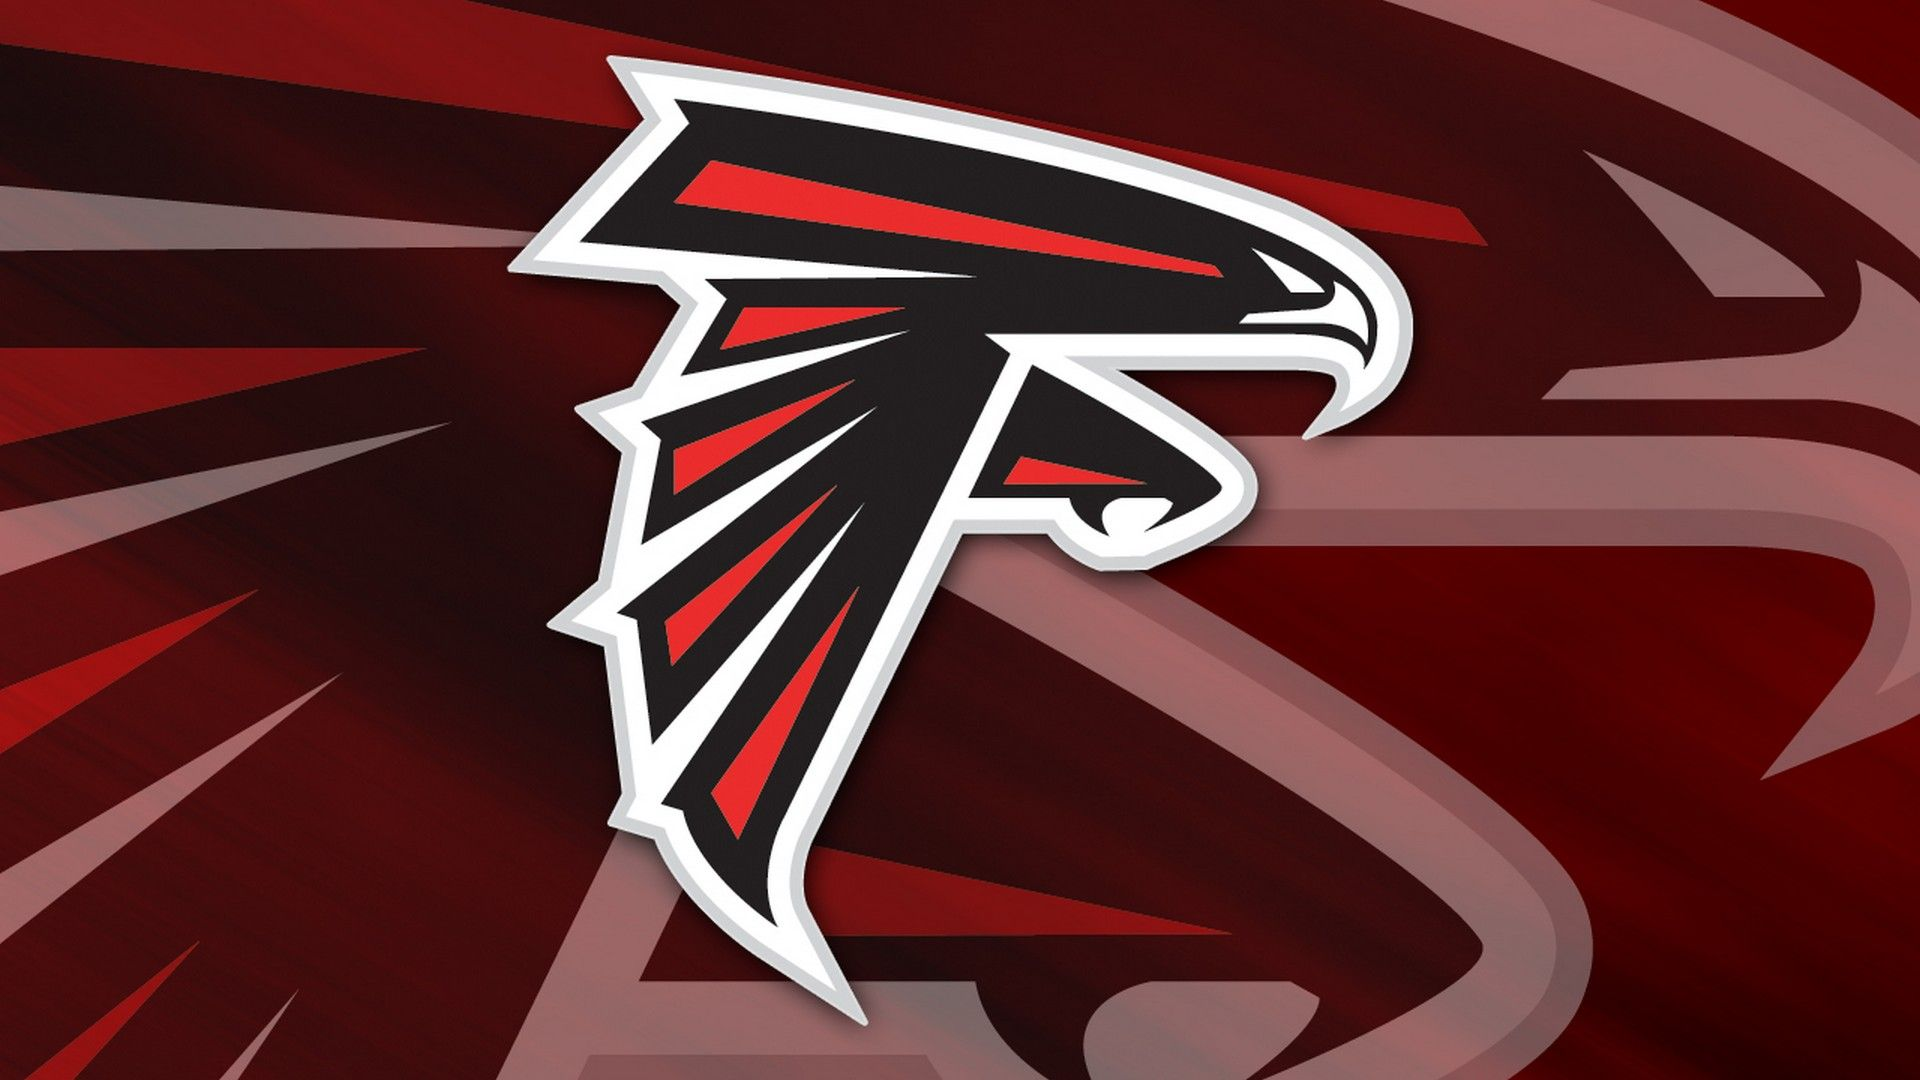 Nfl Wallpapers Atlanta Falcons Wallpaper Atlanta Falcons Logo Atlanta Falcons Football